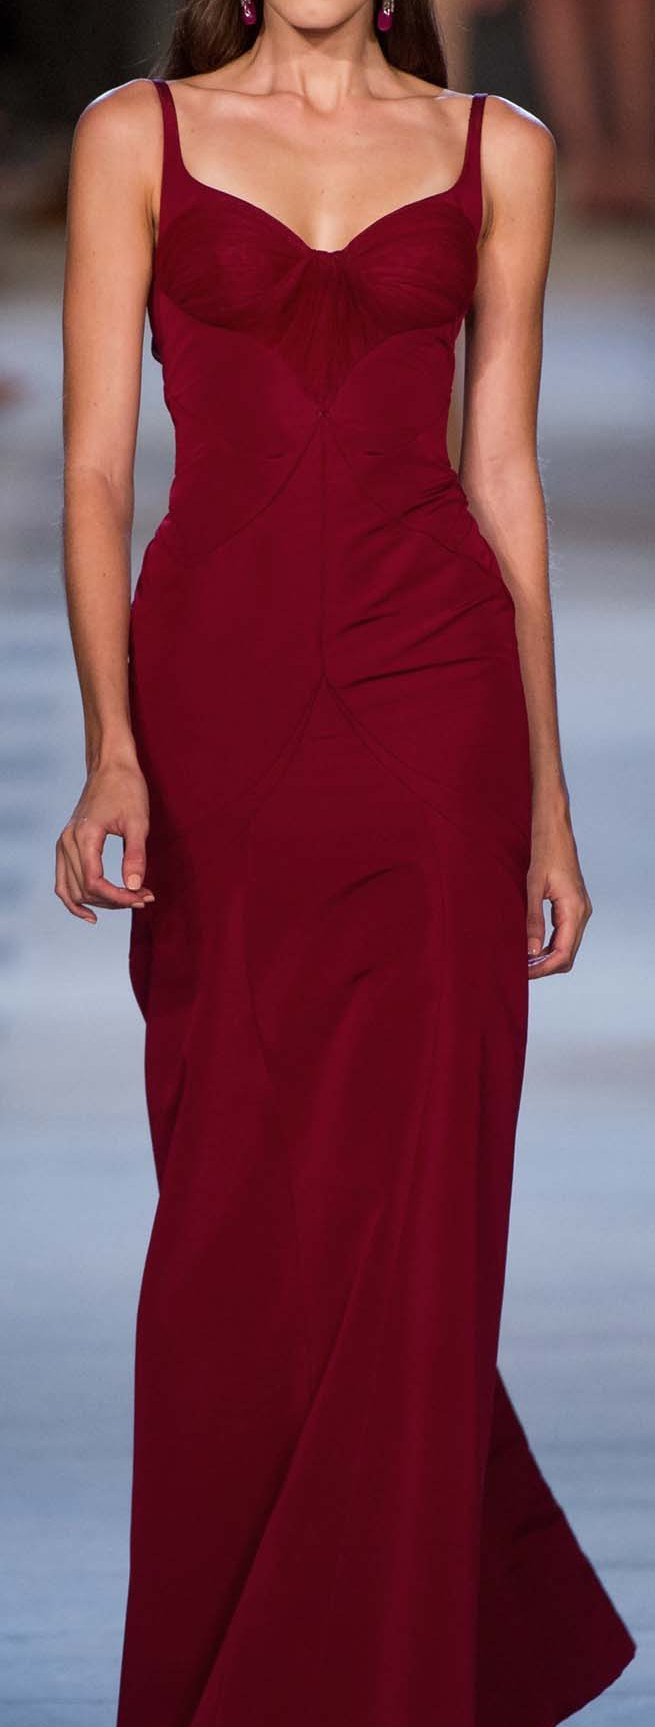 Zac Posen Spring Summer 2013 Ready-To-Wear Collection